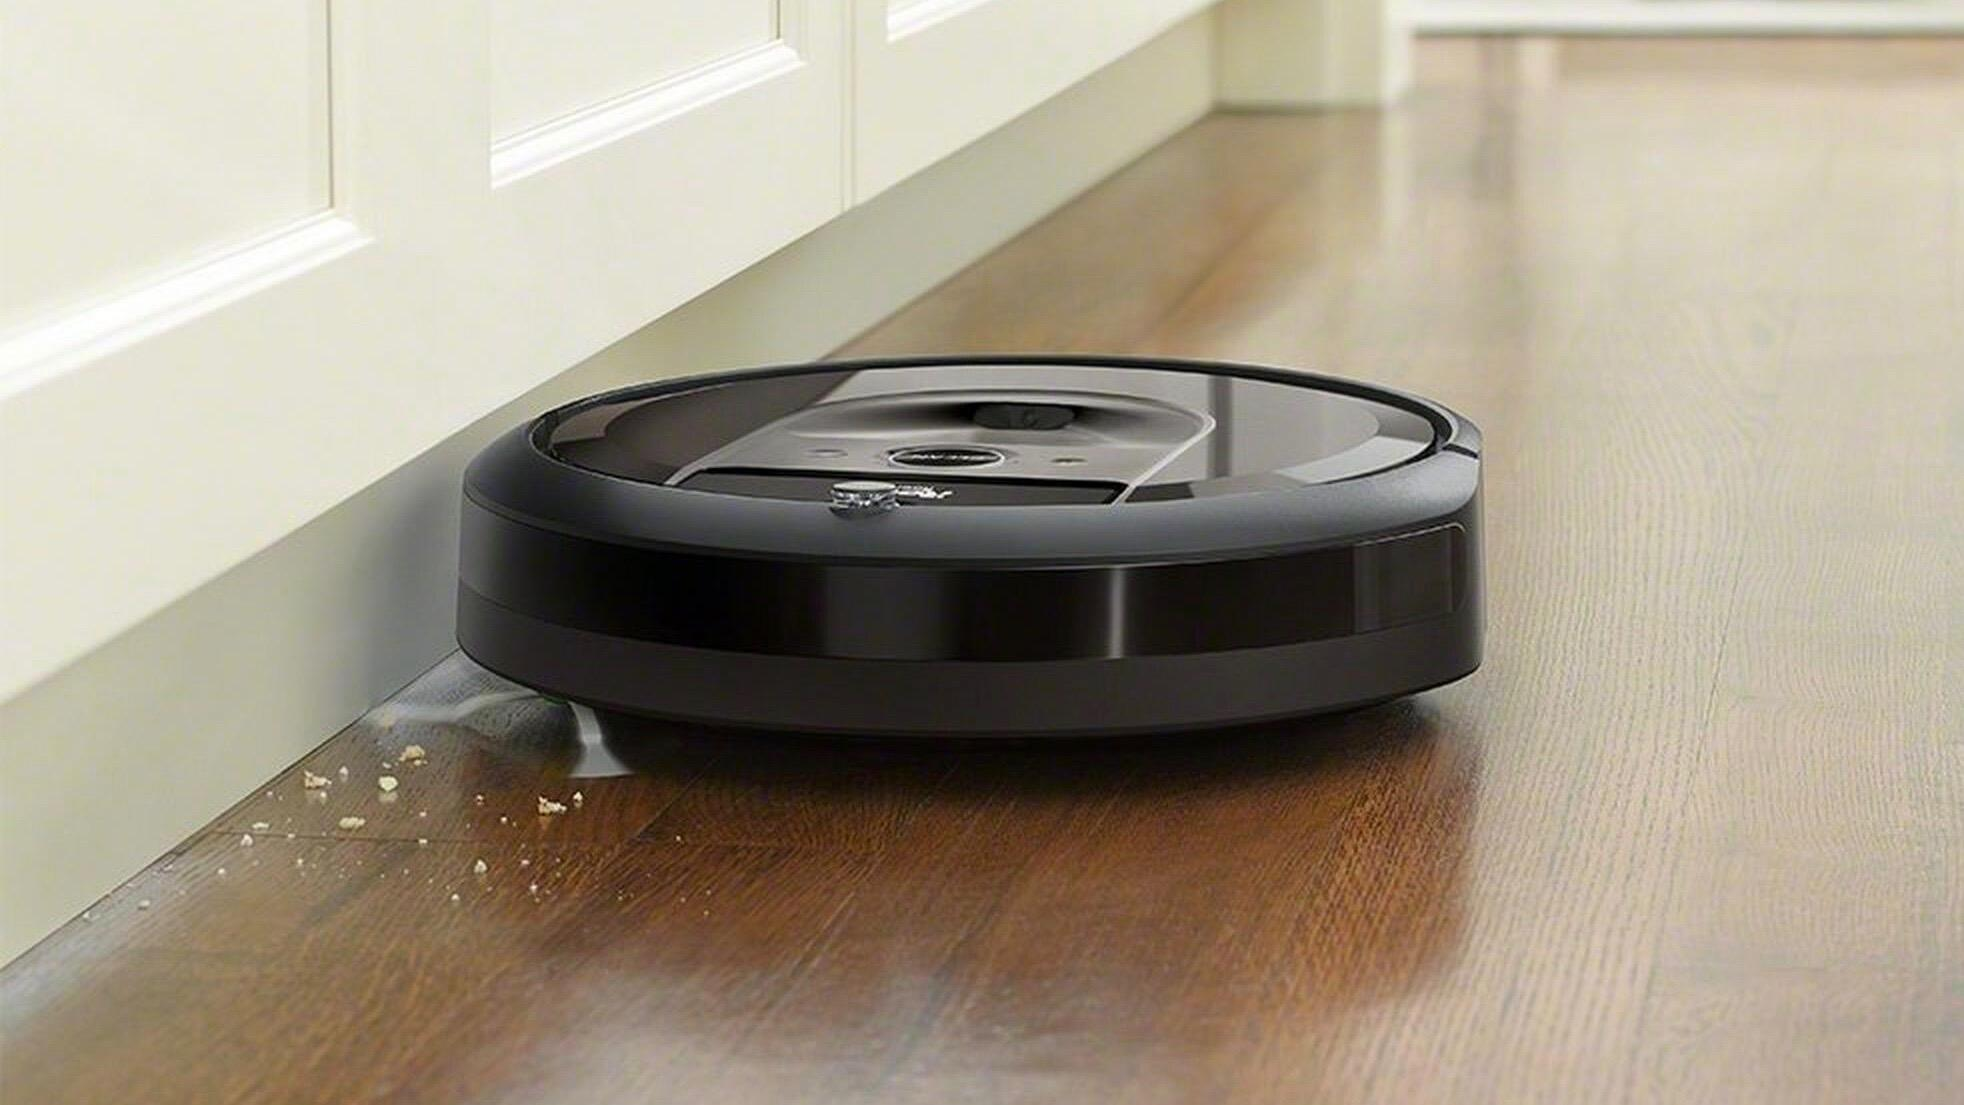 Best Prime Day vacuum deals so far: Save on Roomba, Shark, iRobot, Dyson and more - CNET